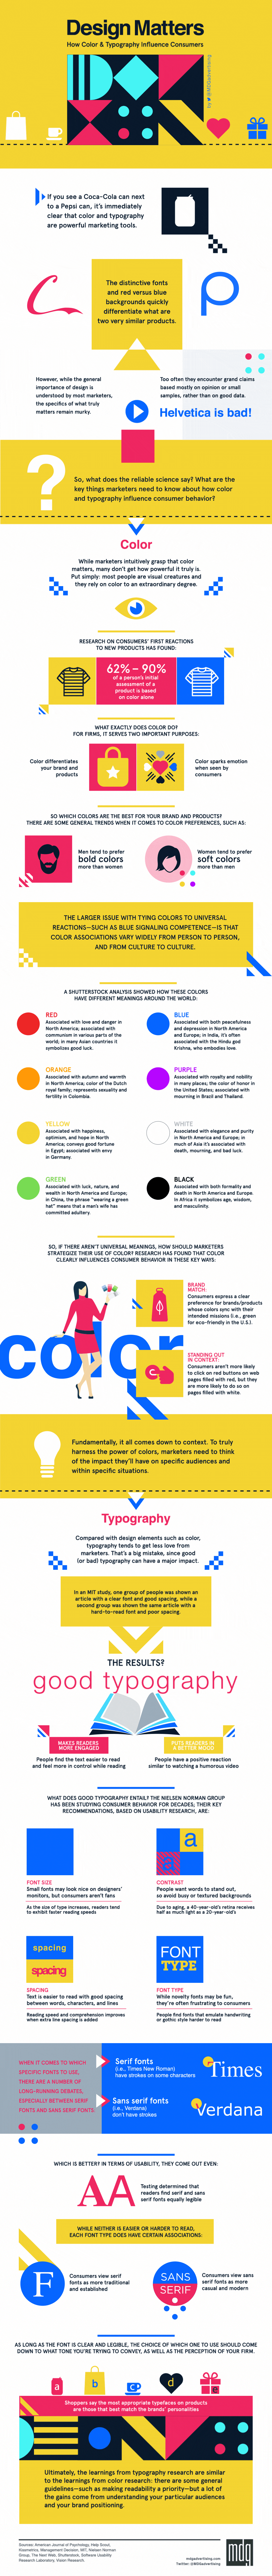 The Impact ofColor and Typography in Marketing